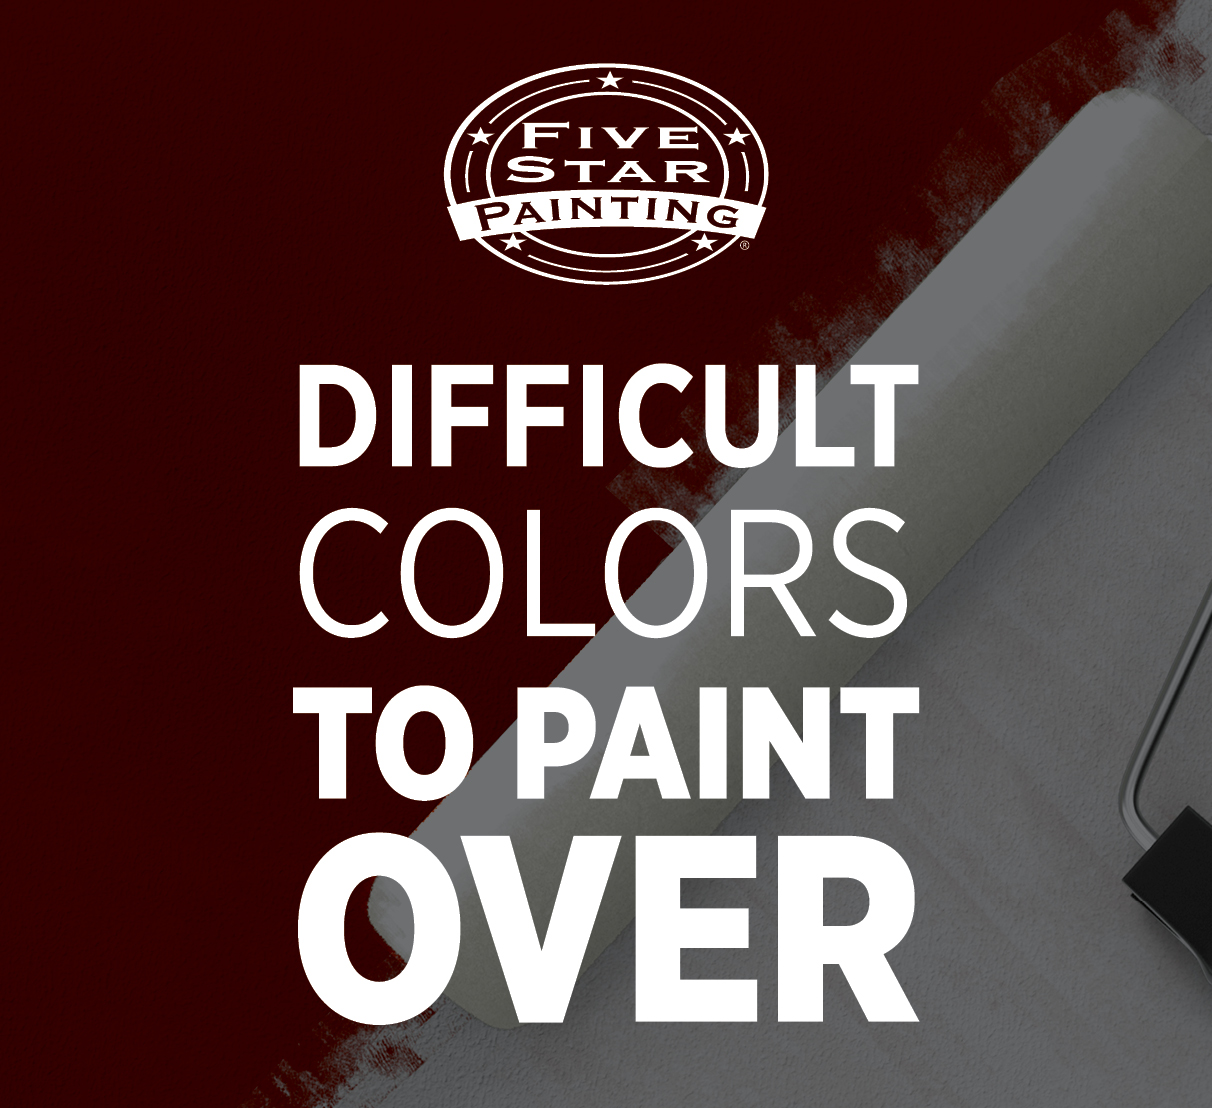 Difficult Colors To Paint Over